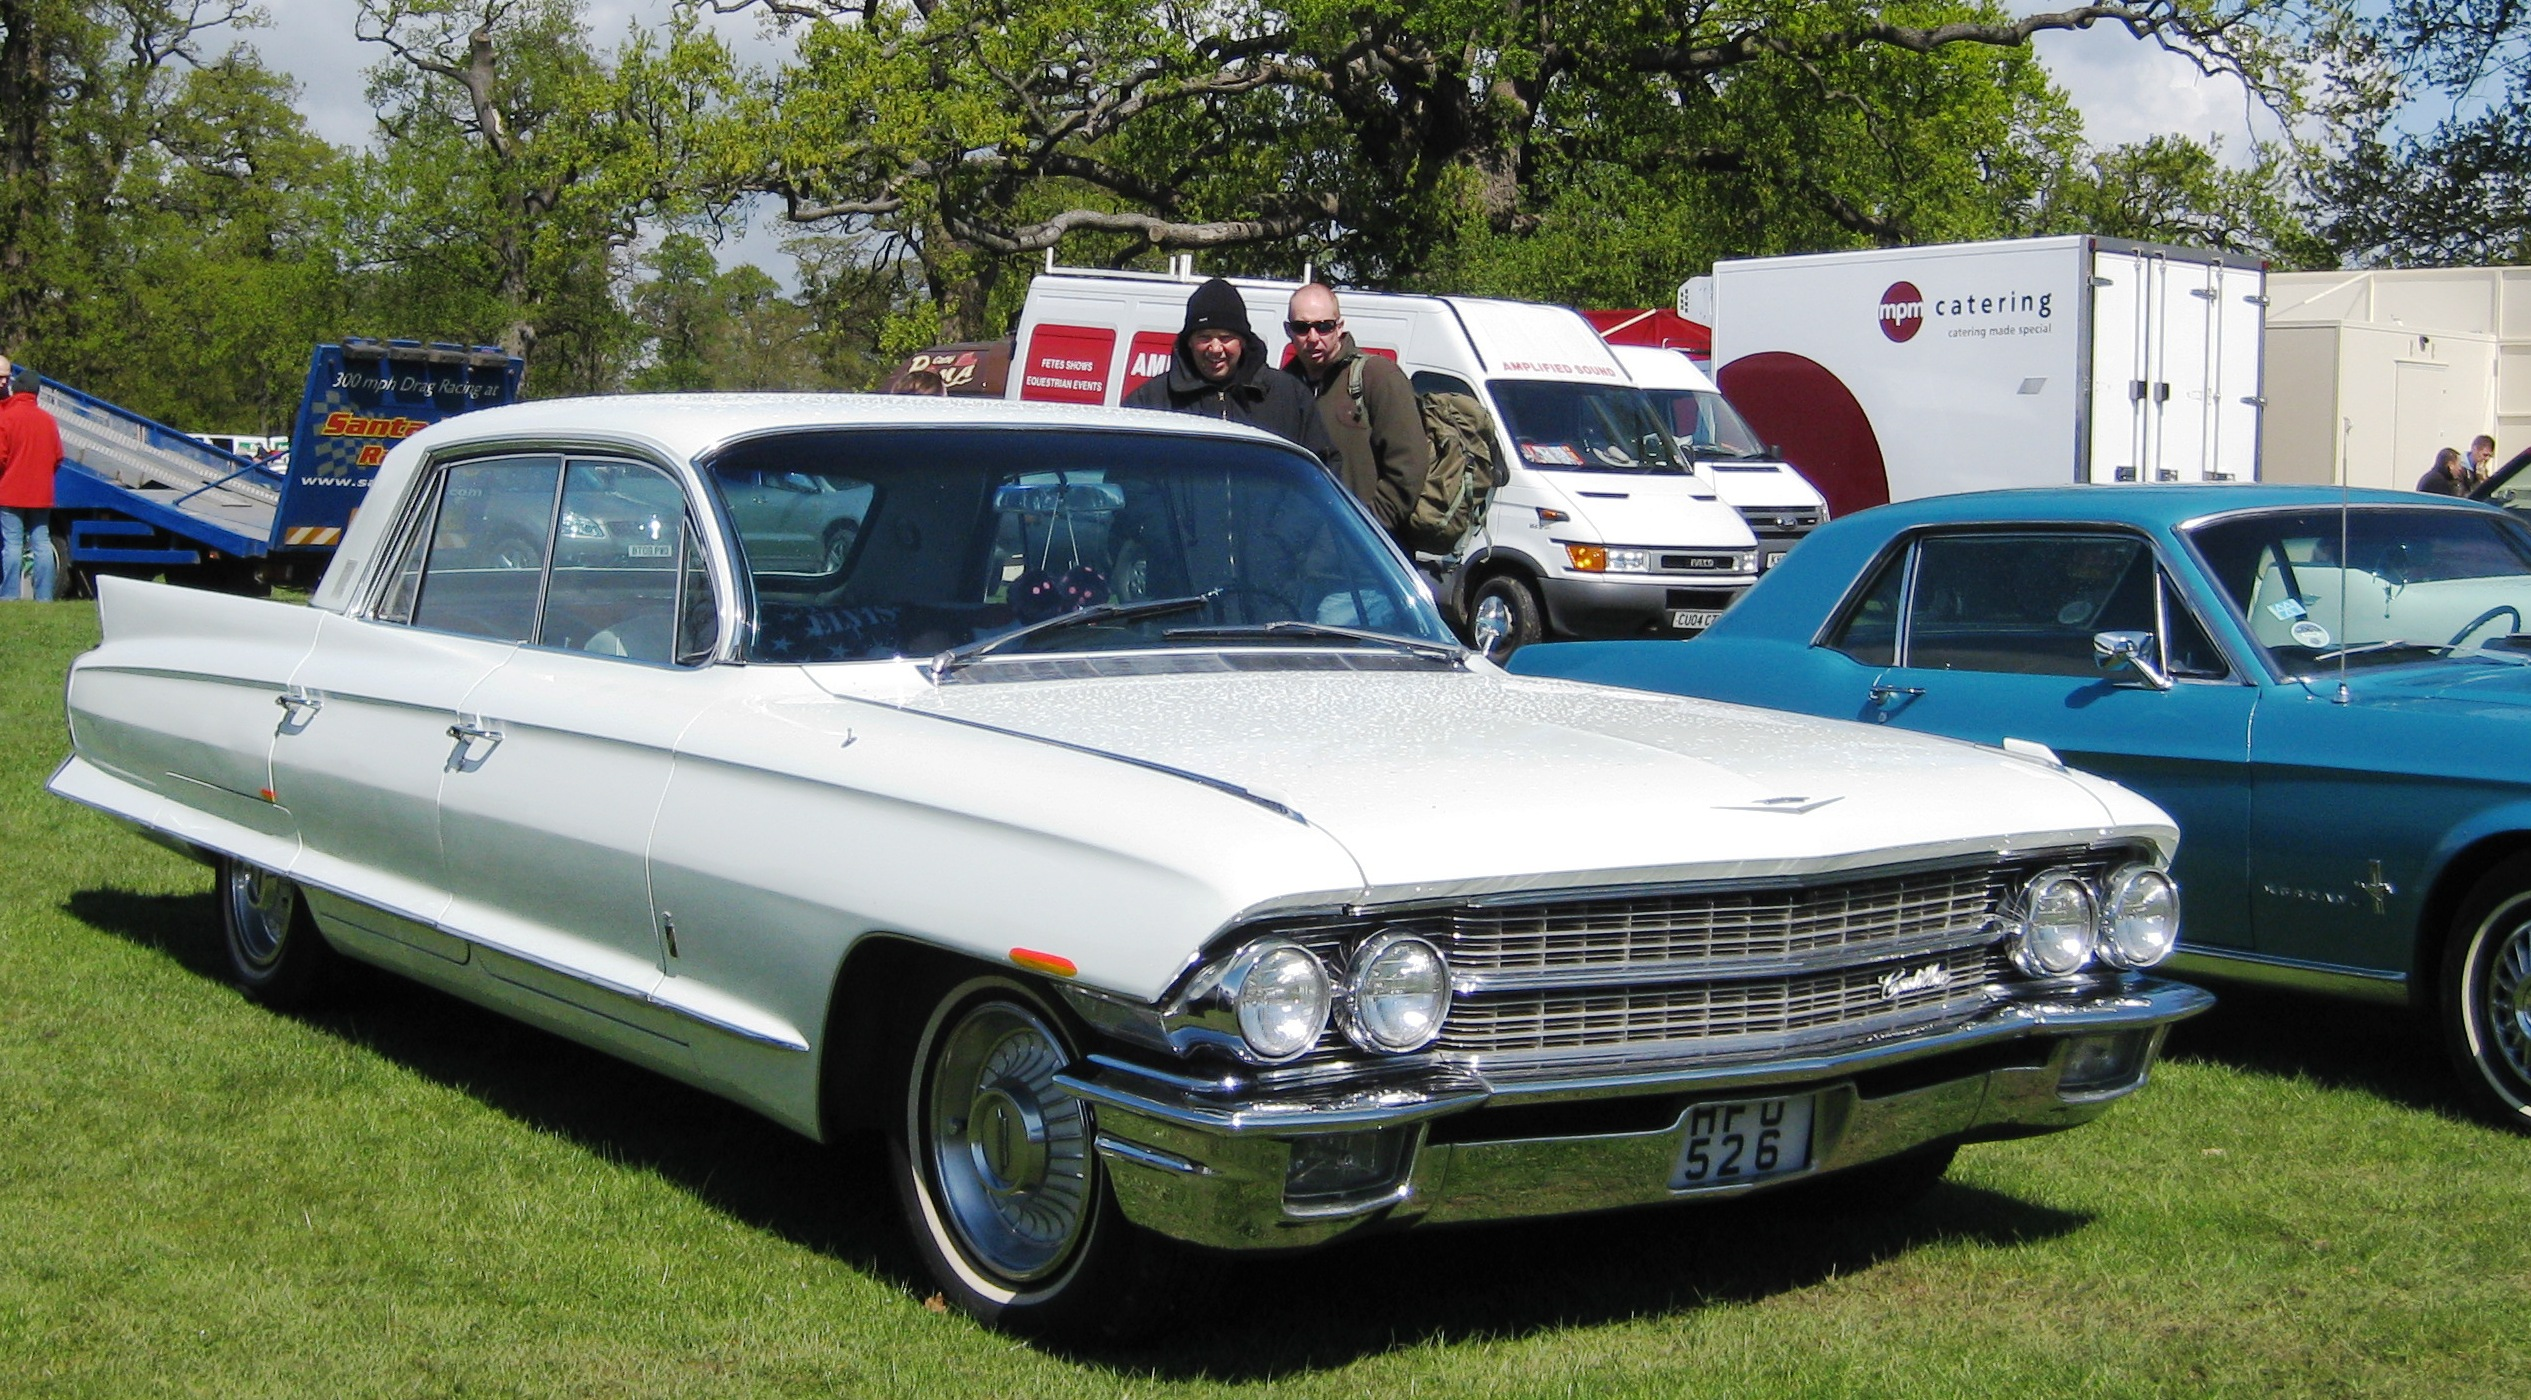 File:Cadillac Fleetwood mfd 1962.JPG - Wikimedia Commons